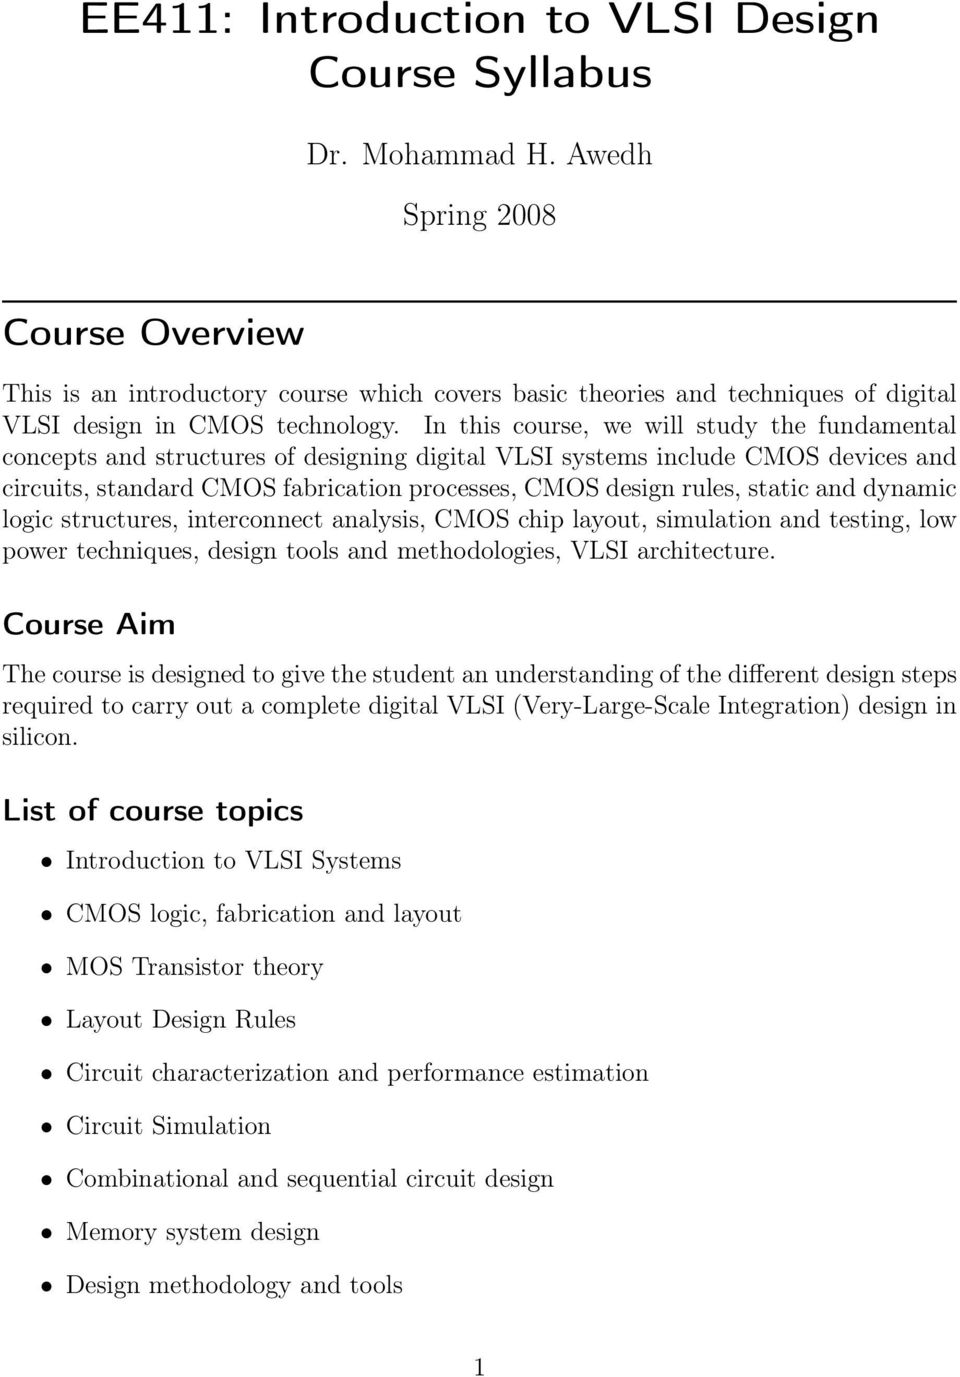 Ee411 Introduction To Vlsi Design Course Syllabus Pdf Electronic Circuit Static And Dynamic Logic Structures Interconnect Analysis Cmos Chip Layout Simulation Testing